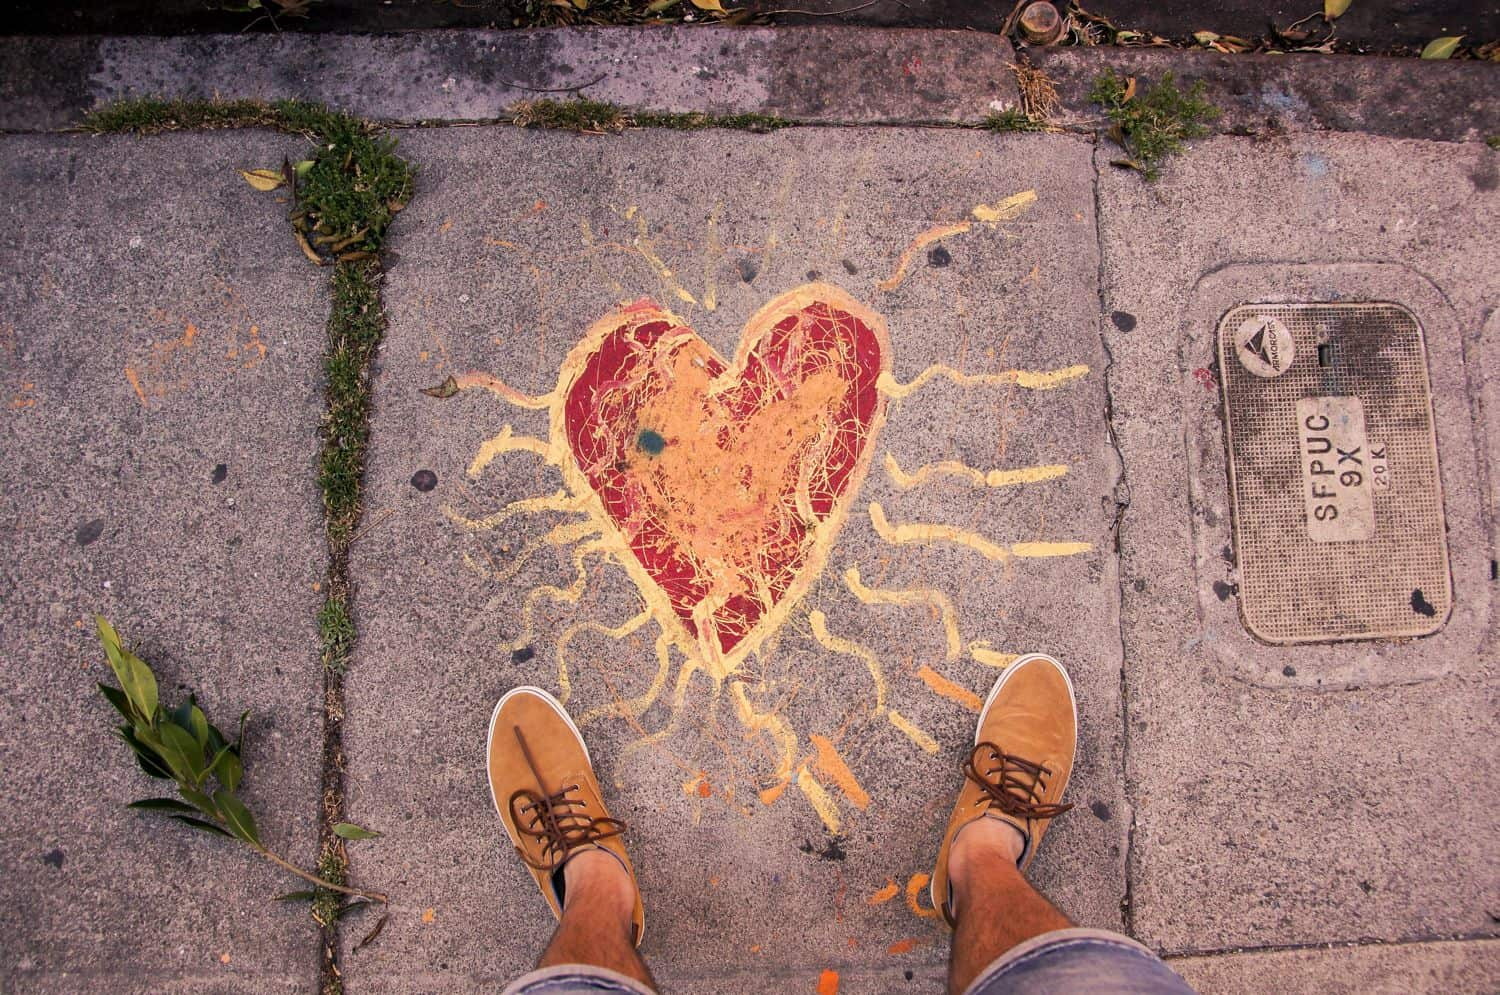 From above, a pair of feet stand on either side of a flaming heart drawn in sidewalk chalk.